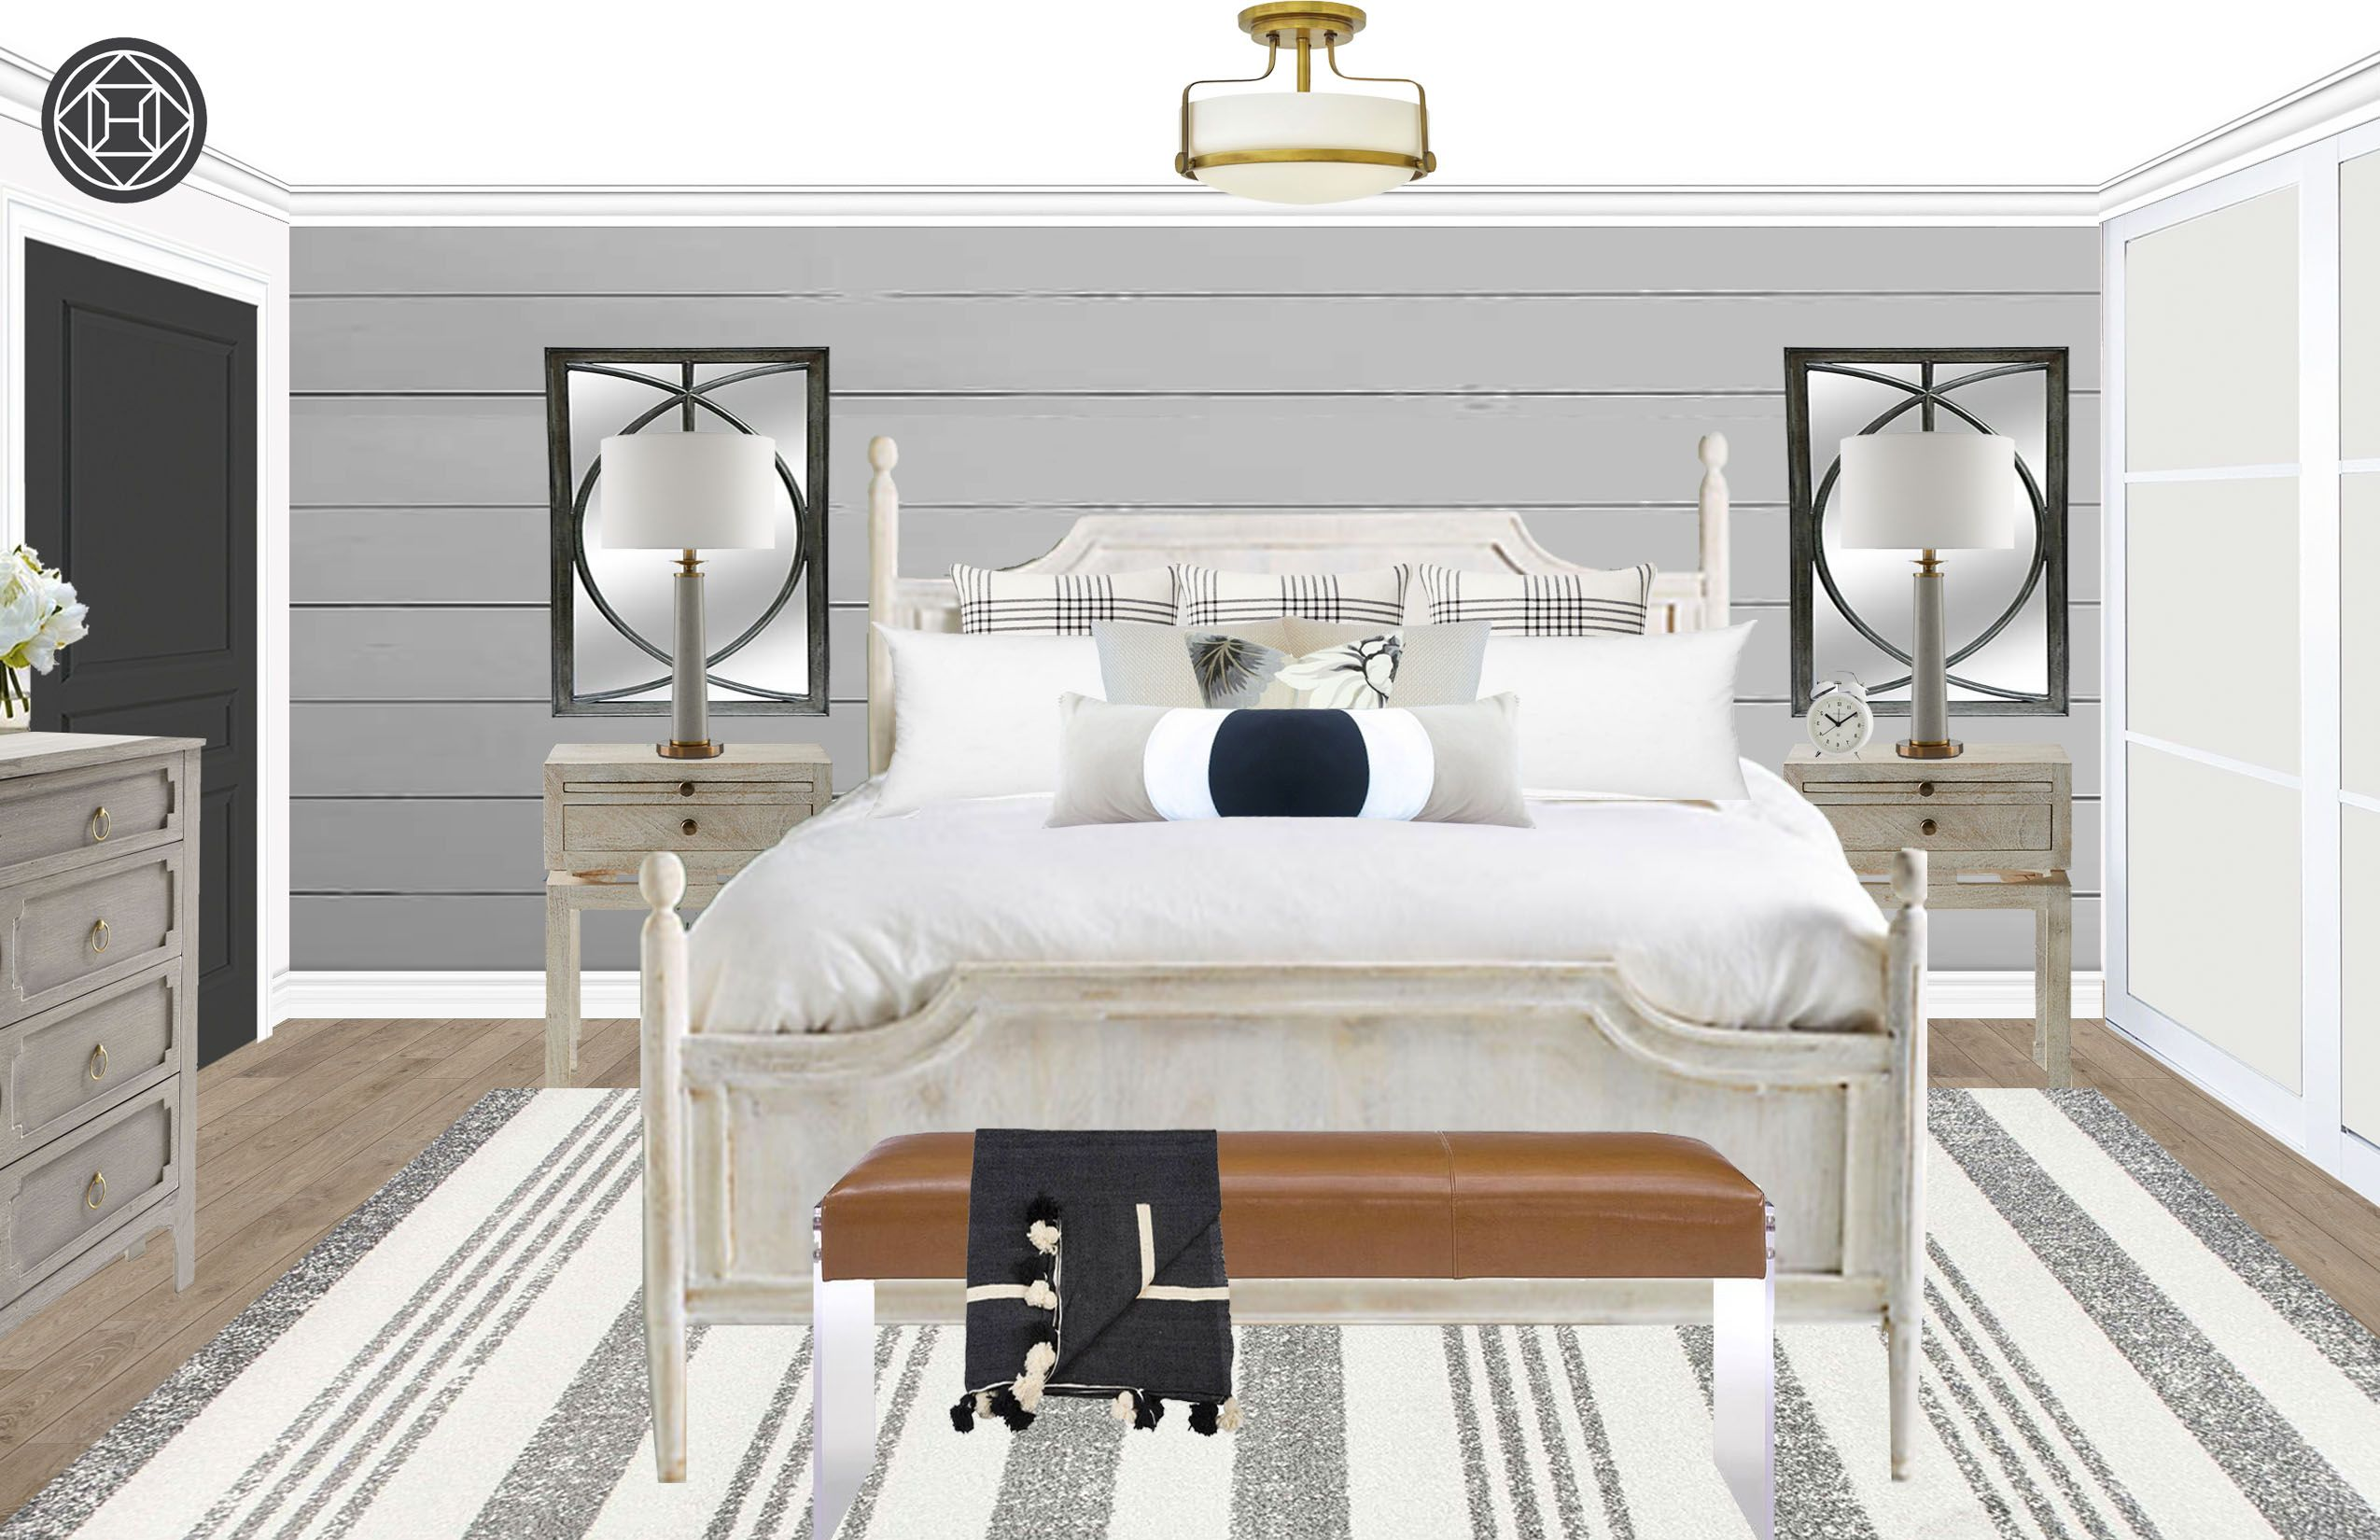 Contemporary, Glam, Farmhouse Bedroom Design by Havenly